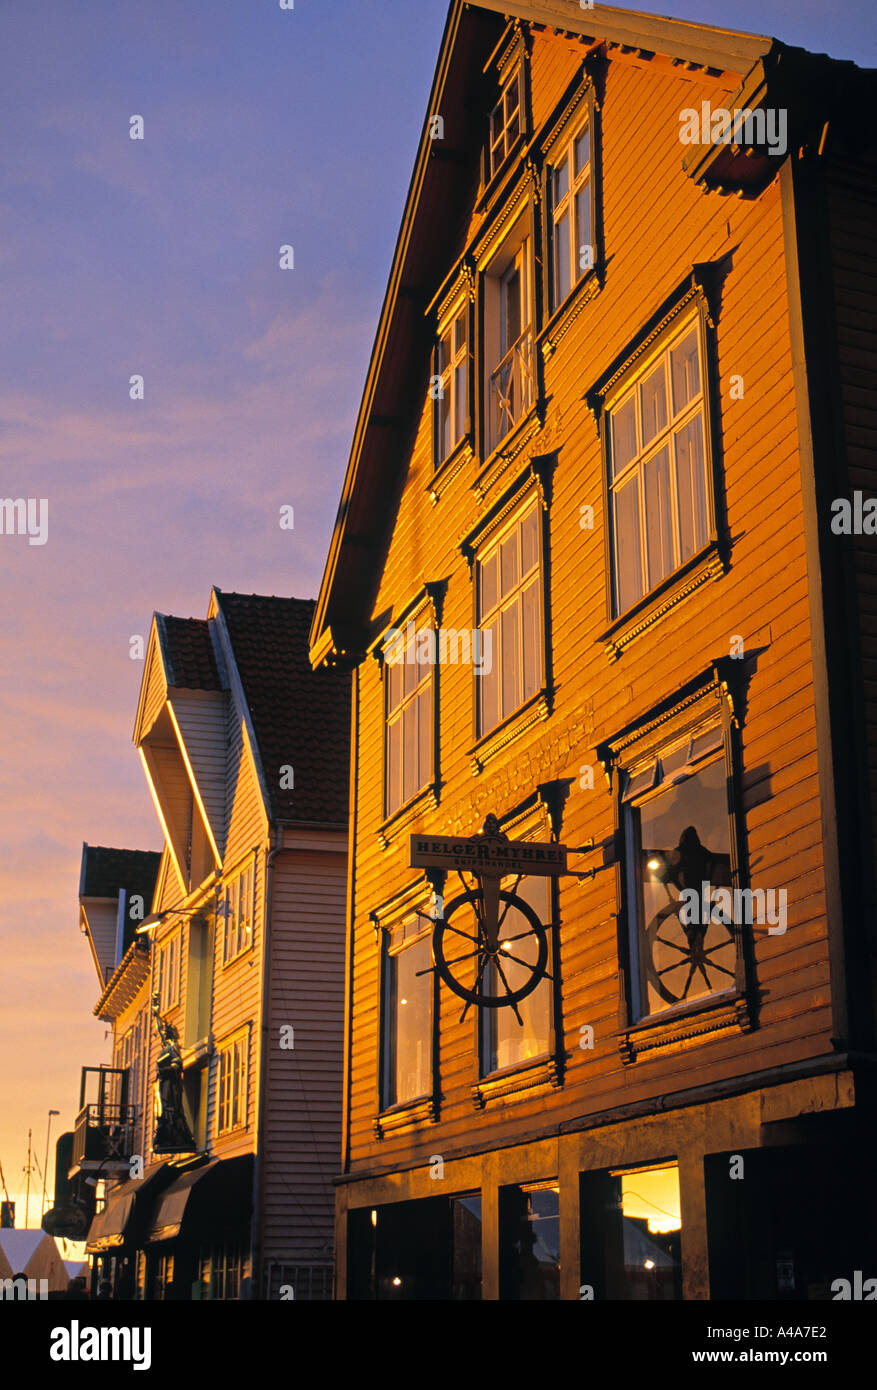 Harbour front warehouse,  Alesund, Norway - Stock Image